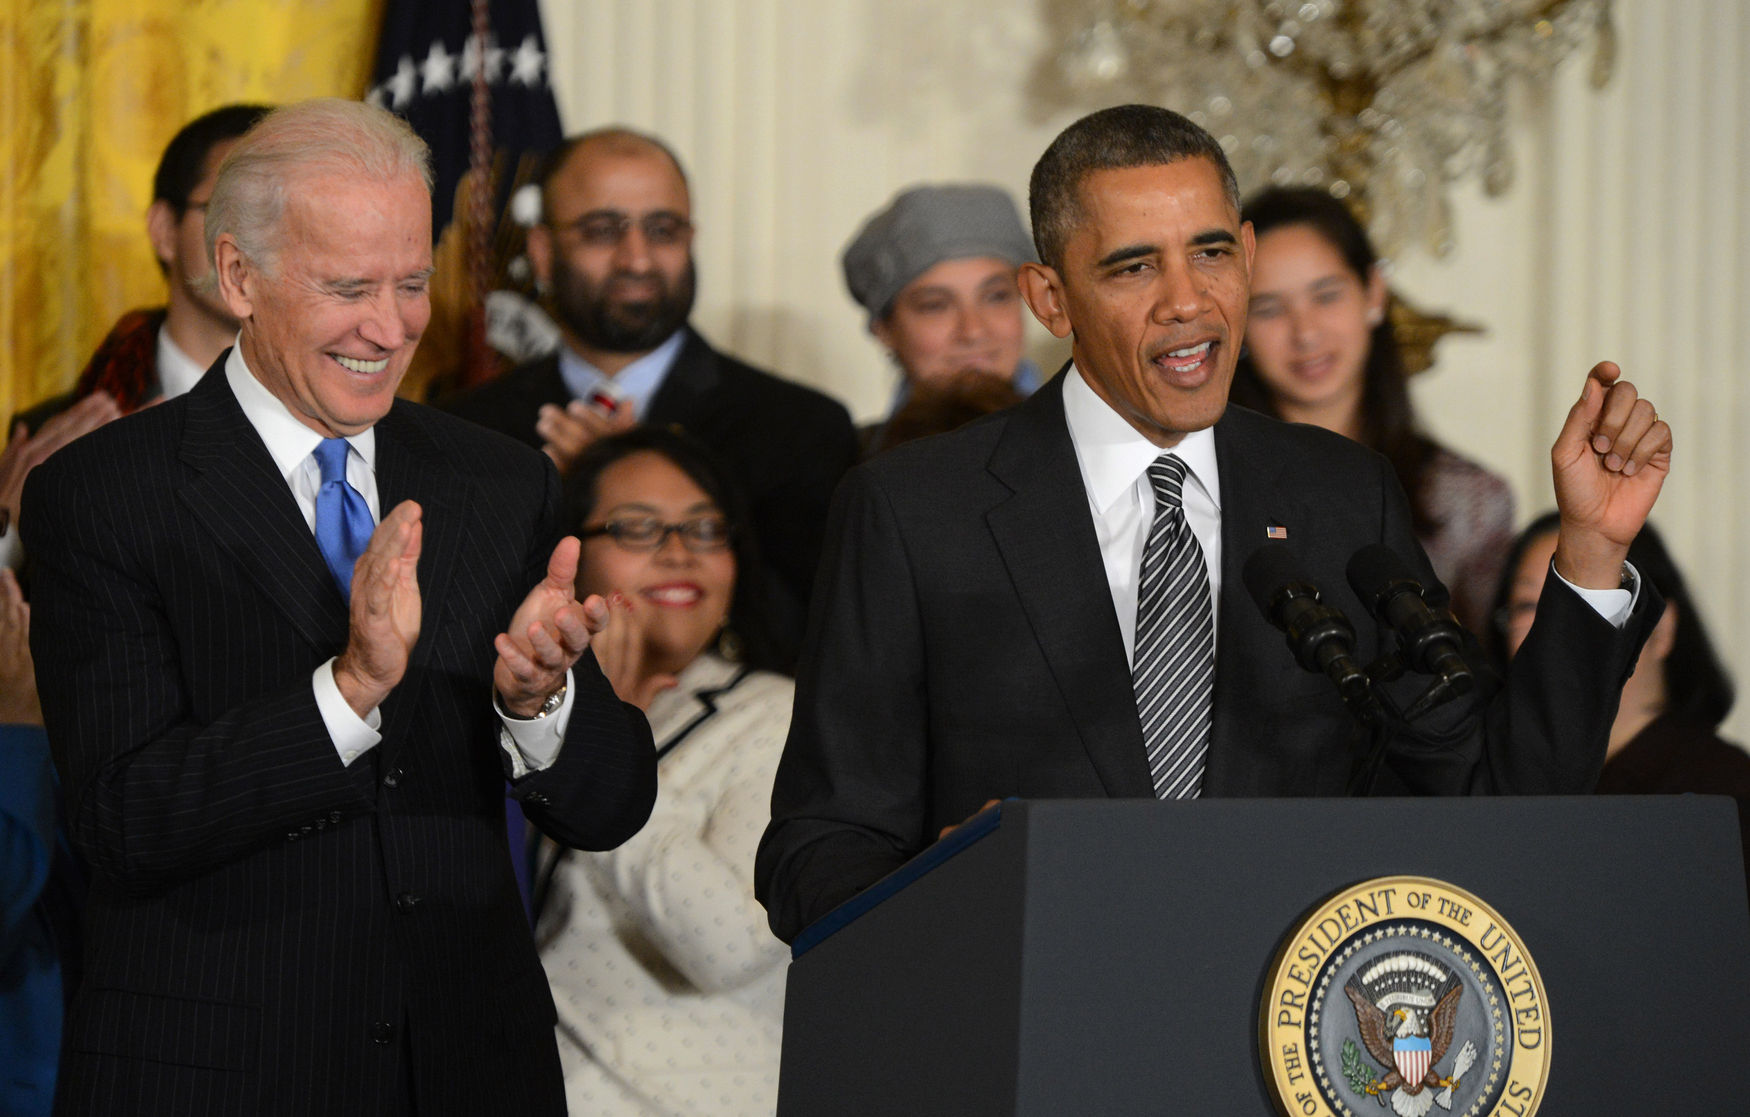 Obama Discusses Immigration Reform at the White House